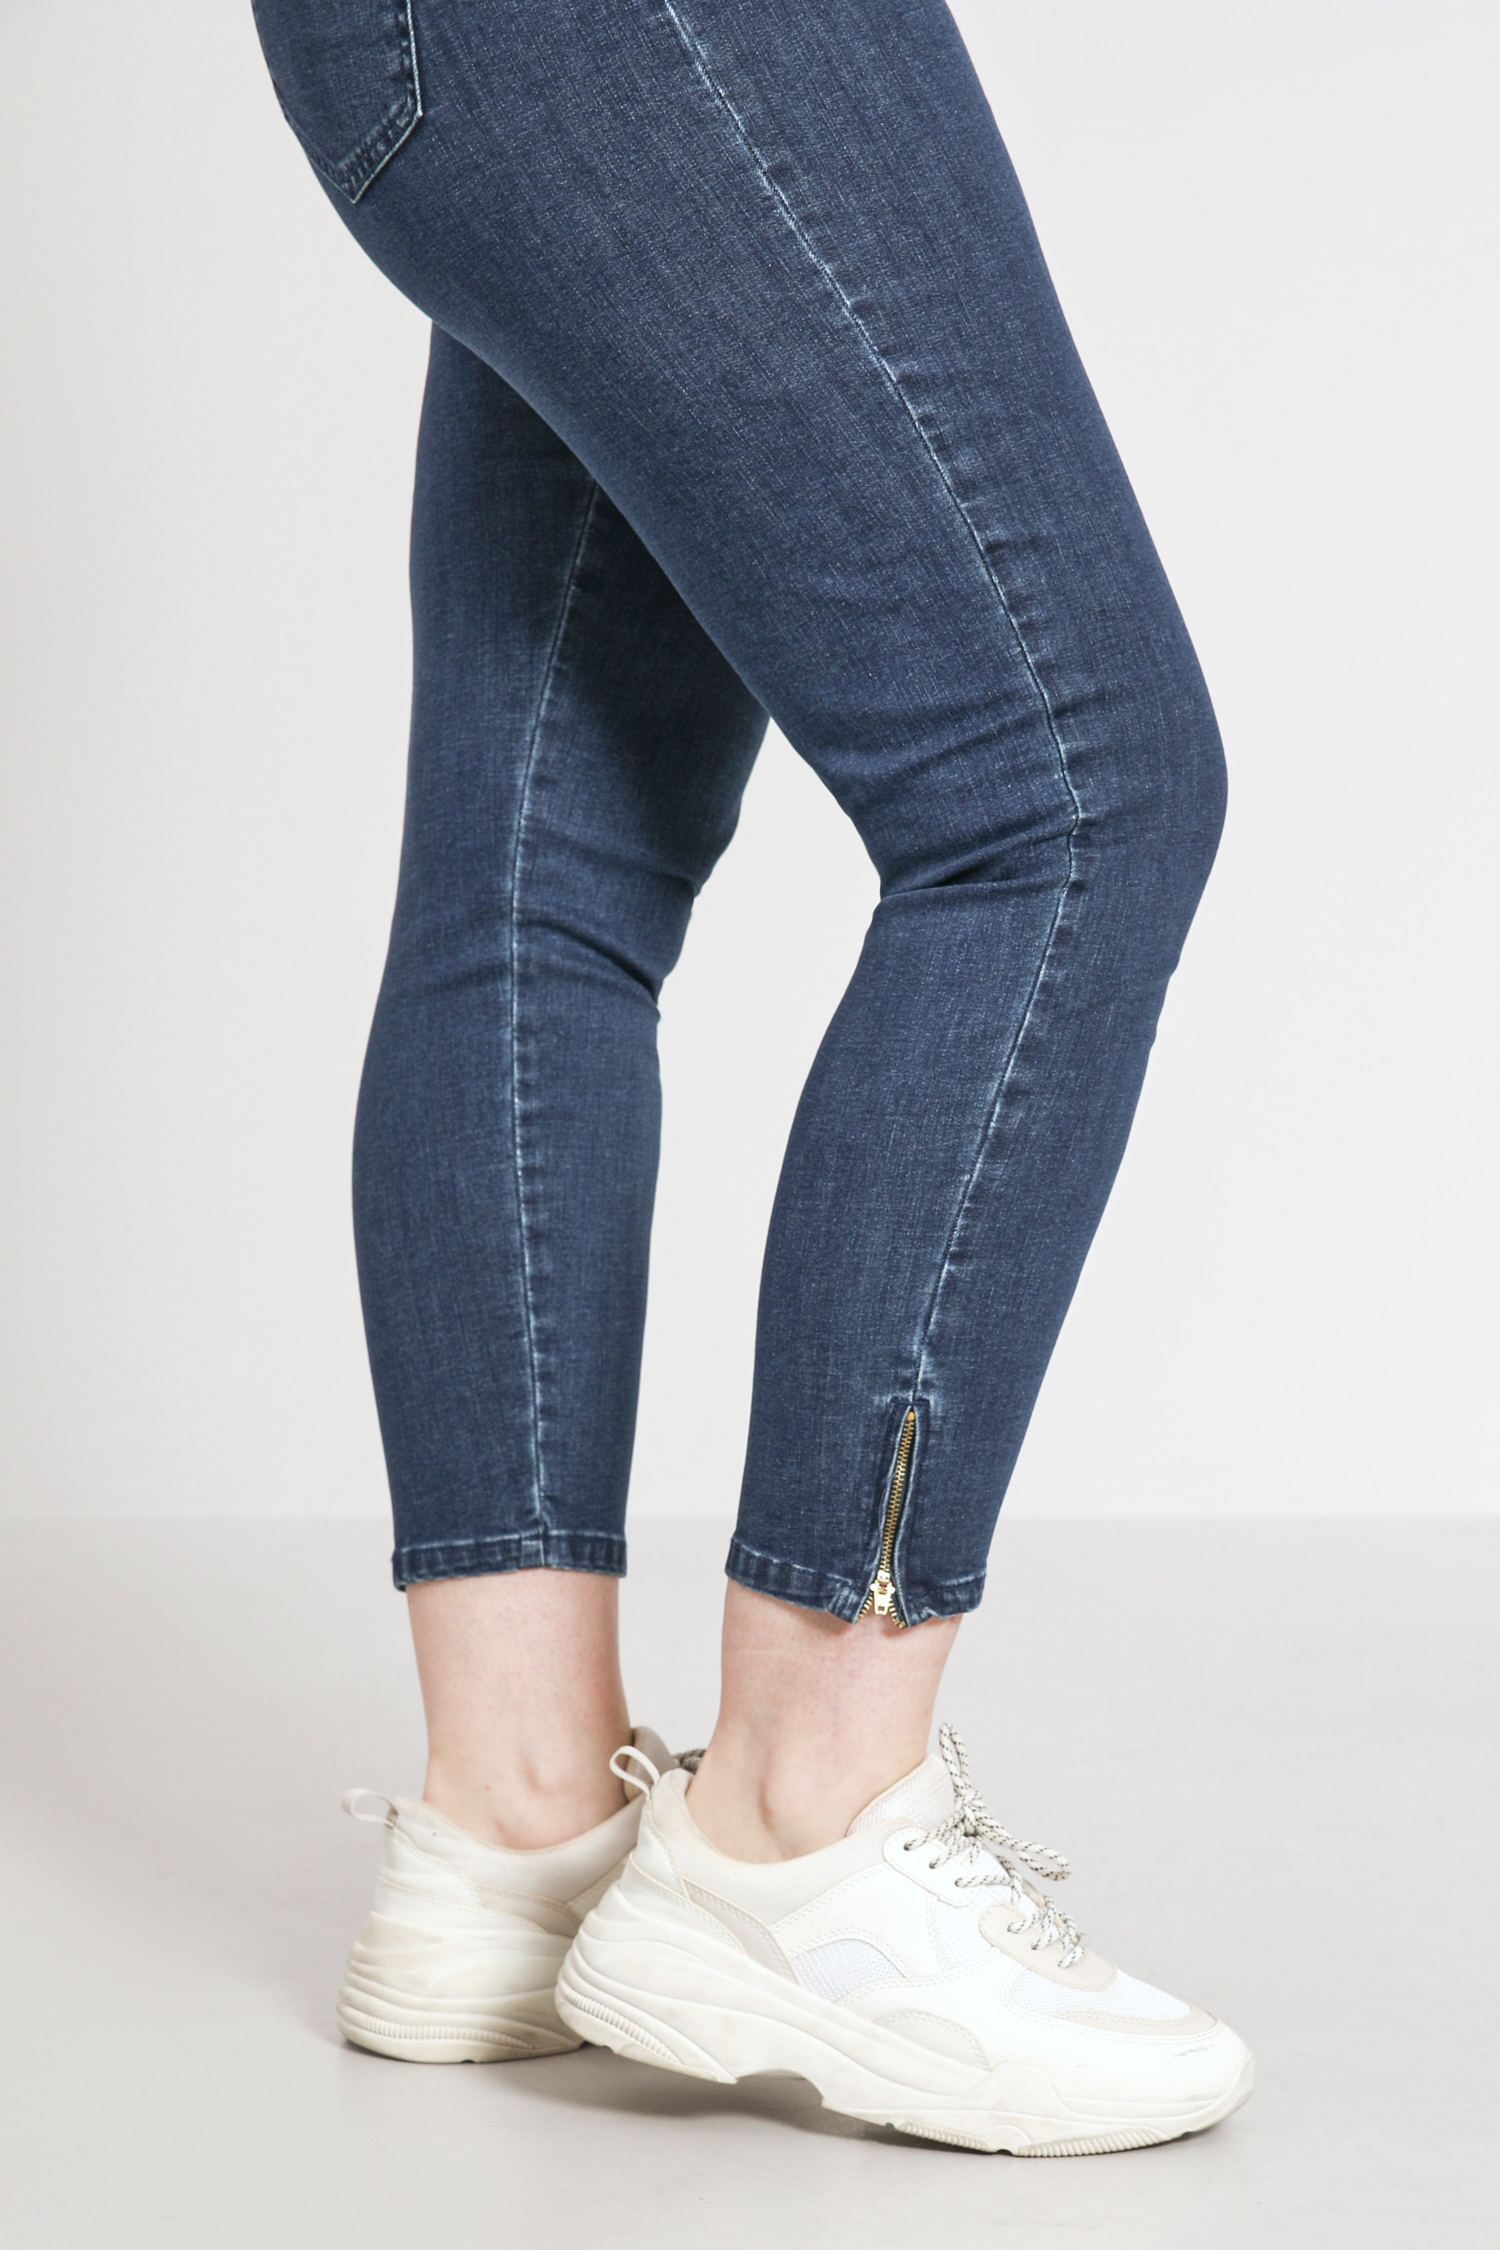 7/8 jeans with zip at the bottom